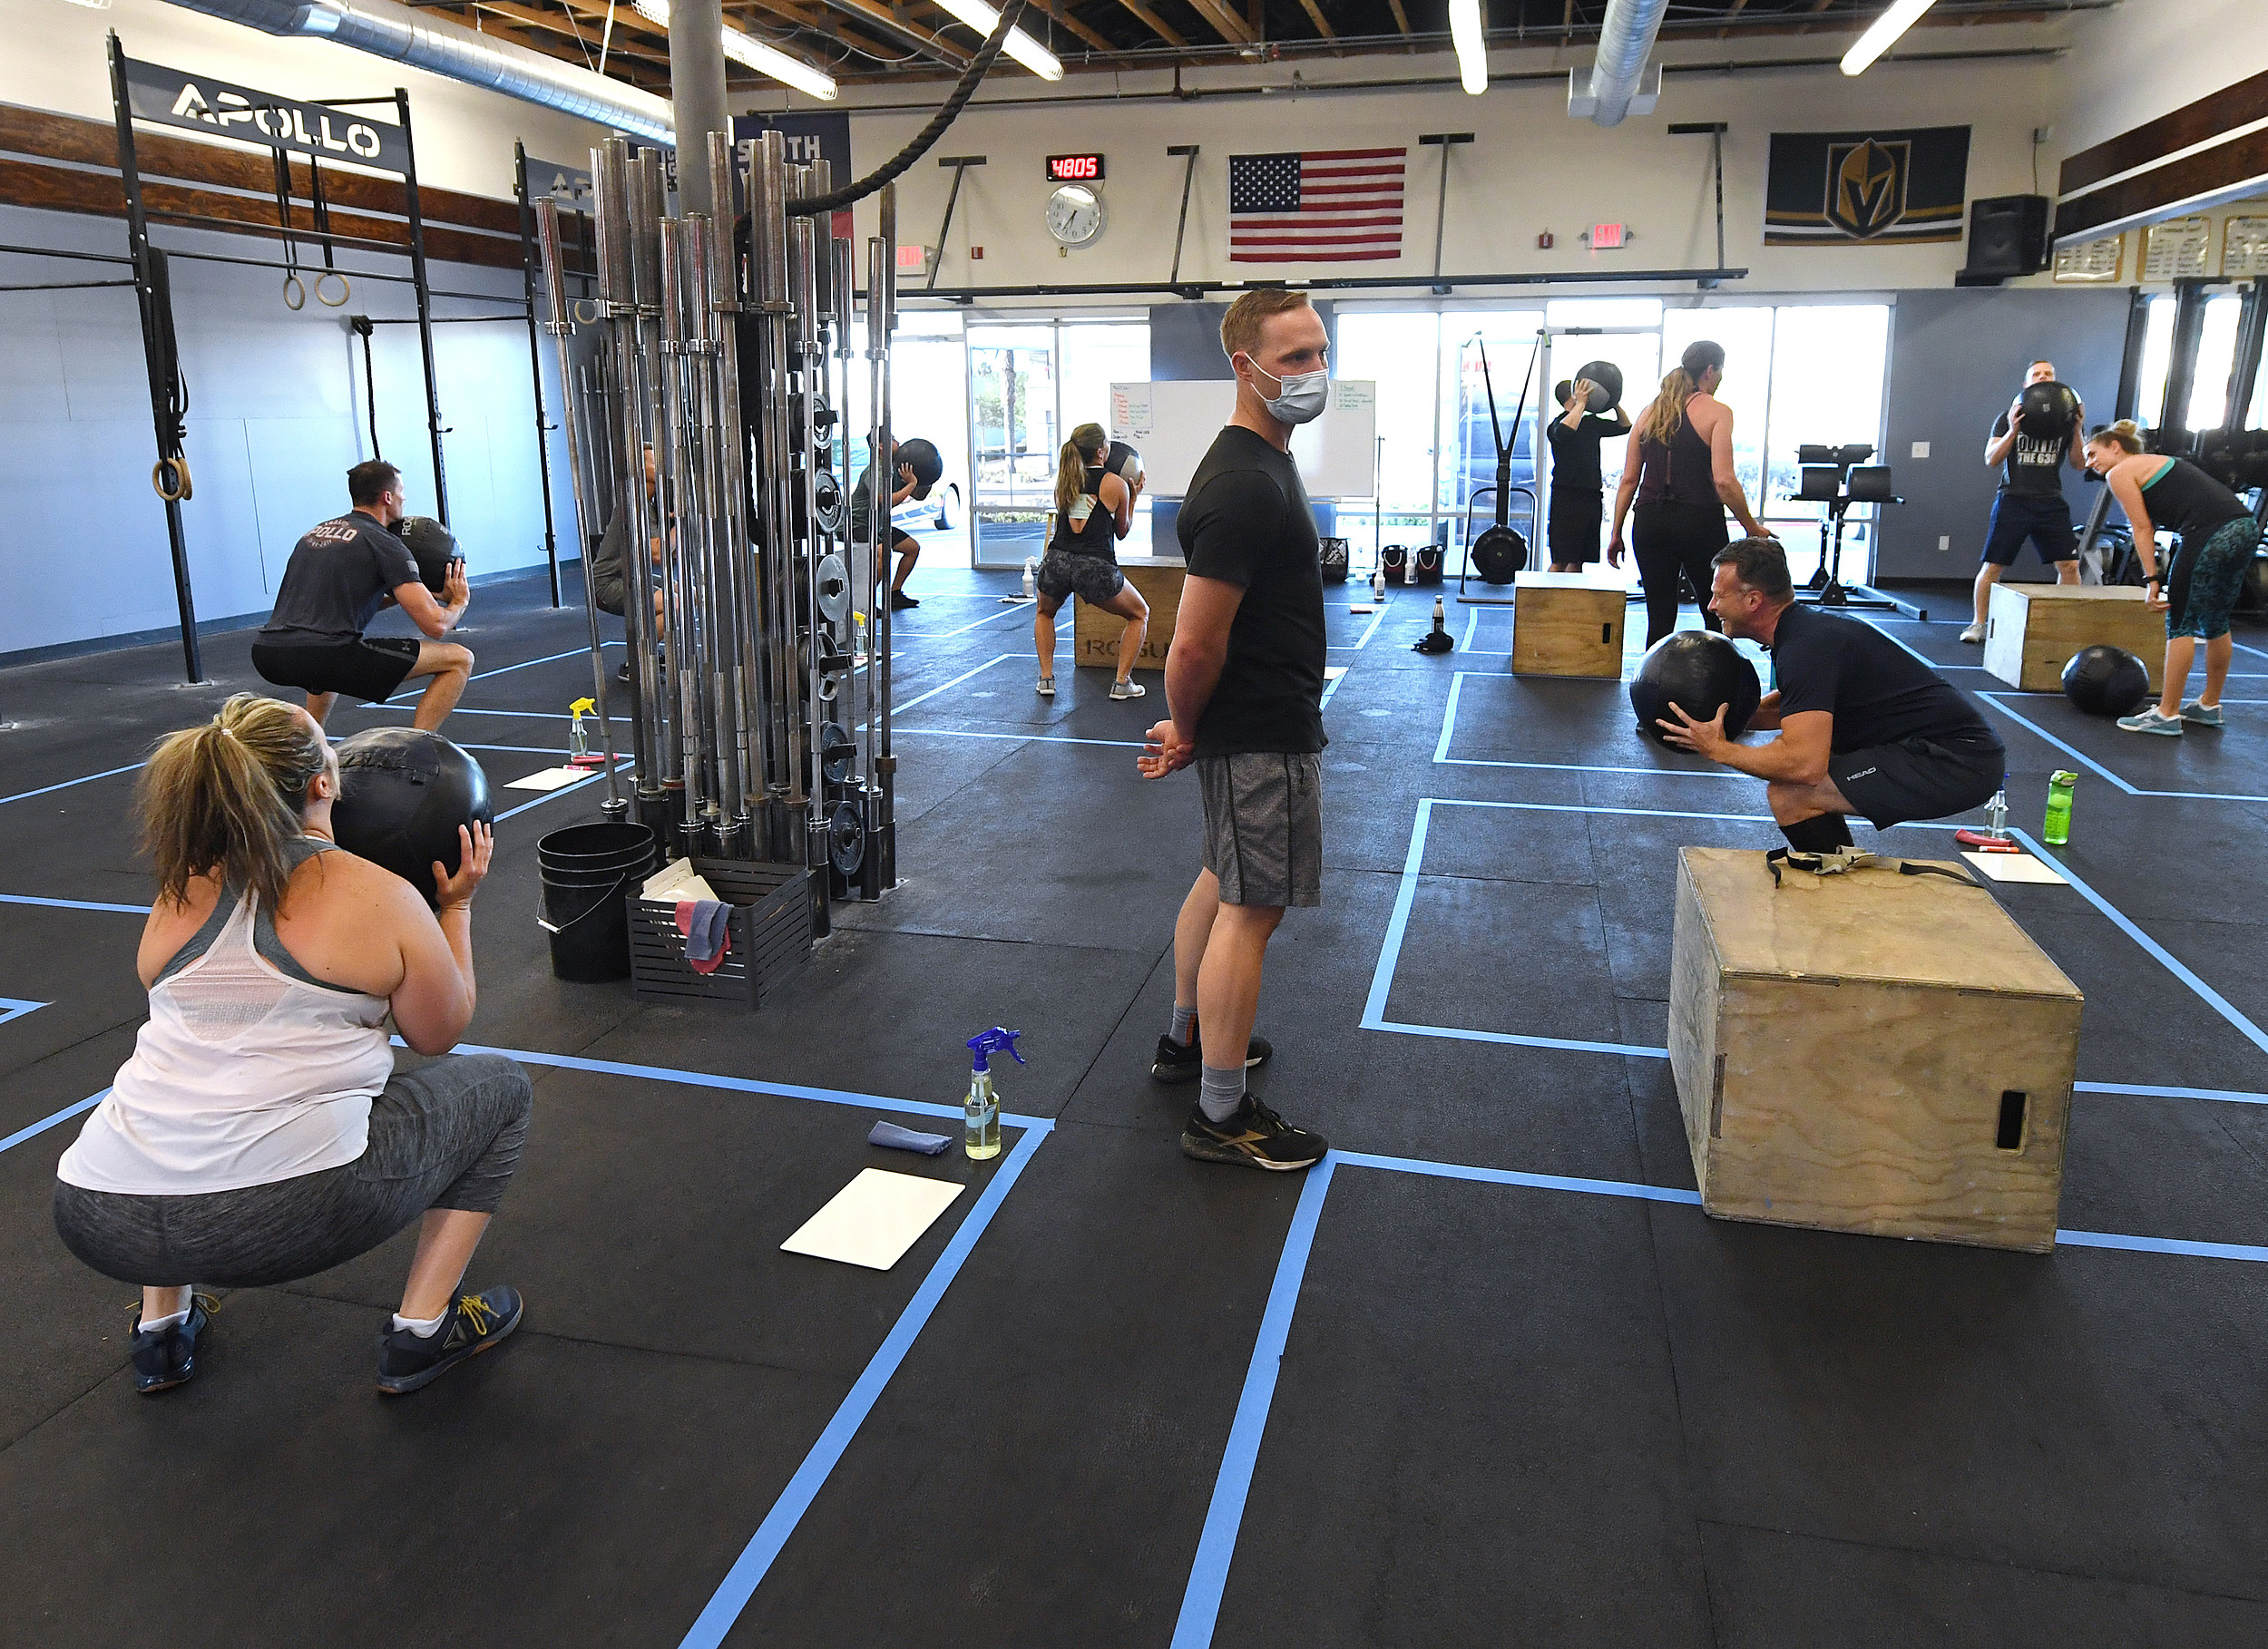 Rules New York Gyms May Have To Follow When Allowed To Reopen